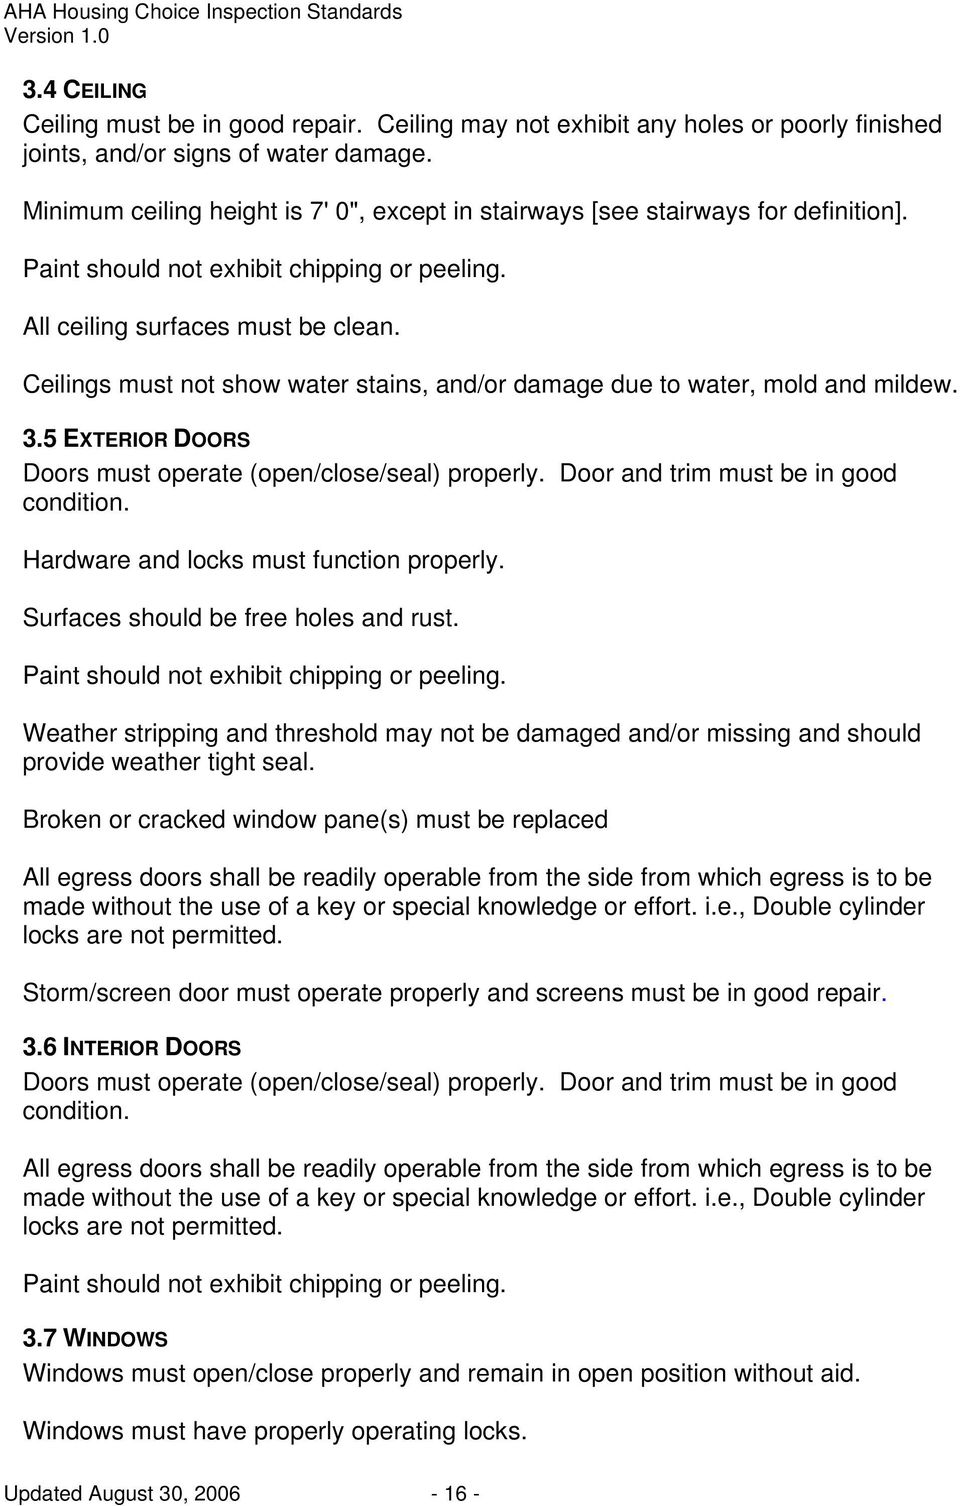 Ceilings must not show water stains, and/or damage due to water, mold and mildew. 3.5 EXTERIOR DOORS Doors must operate (open/close/seal) properly. Door and trim must be in good condition.